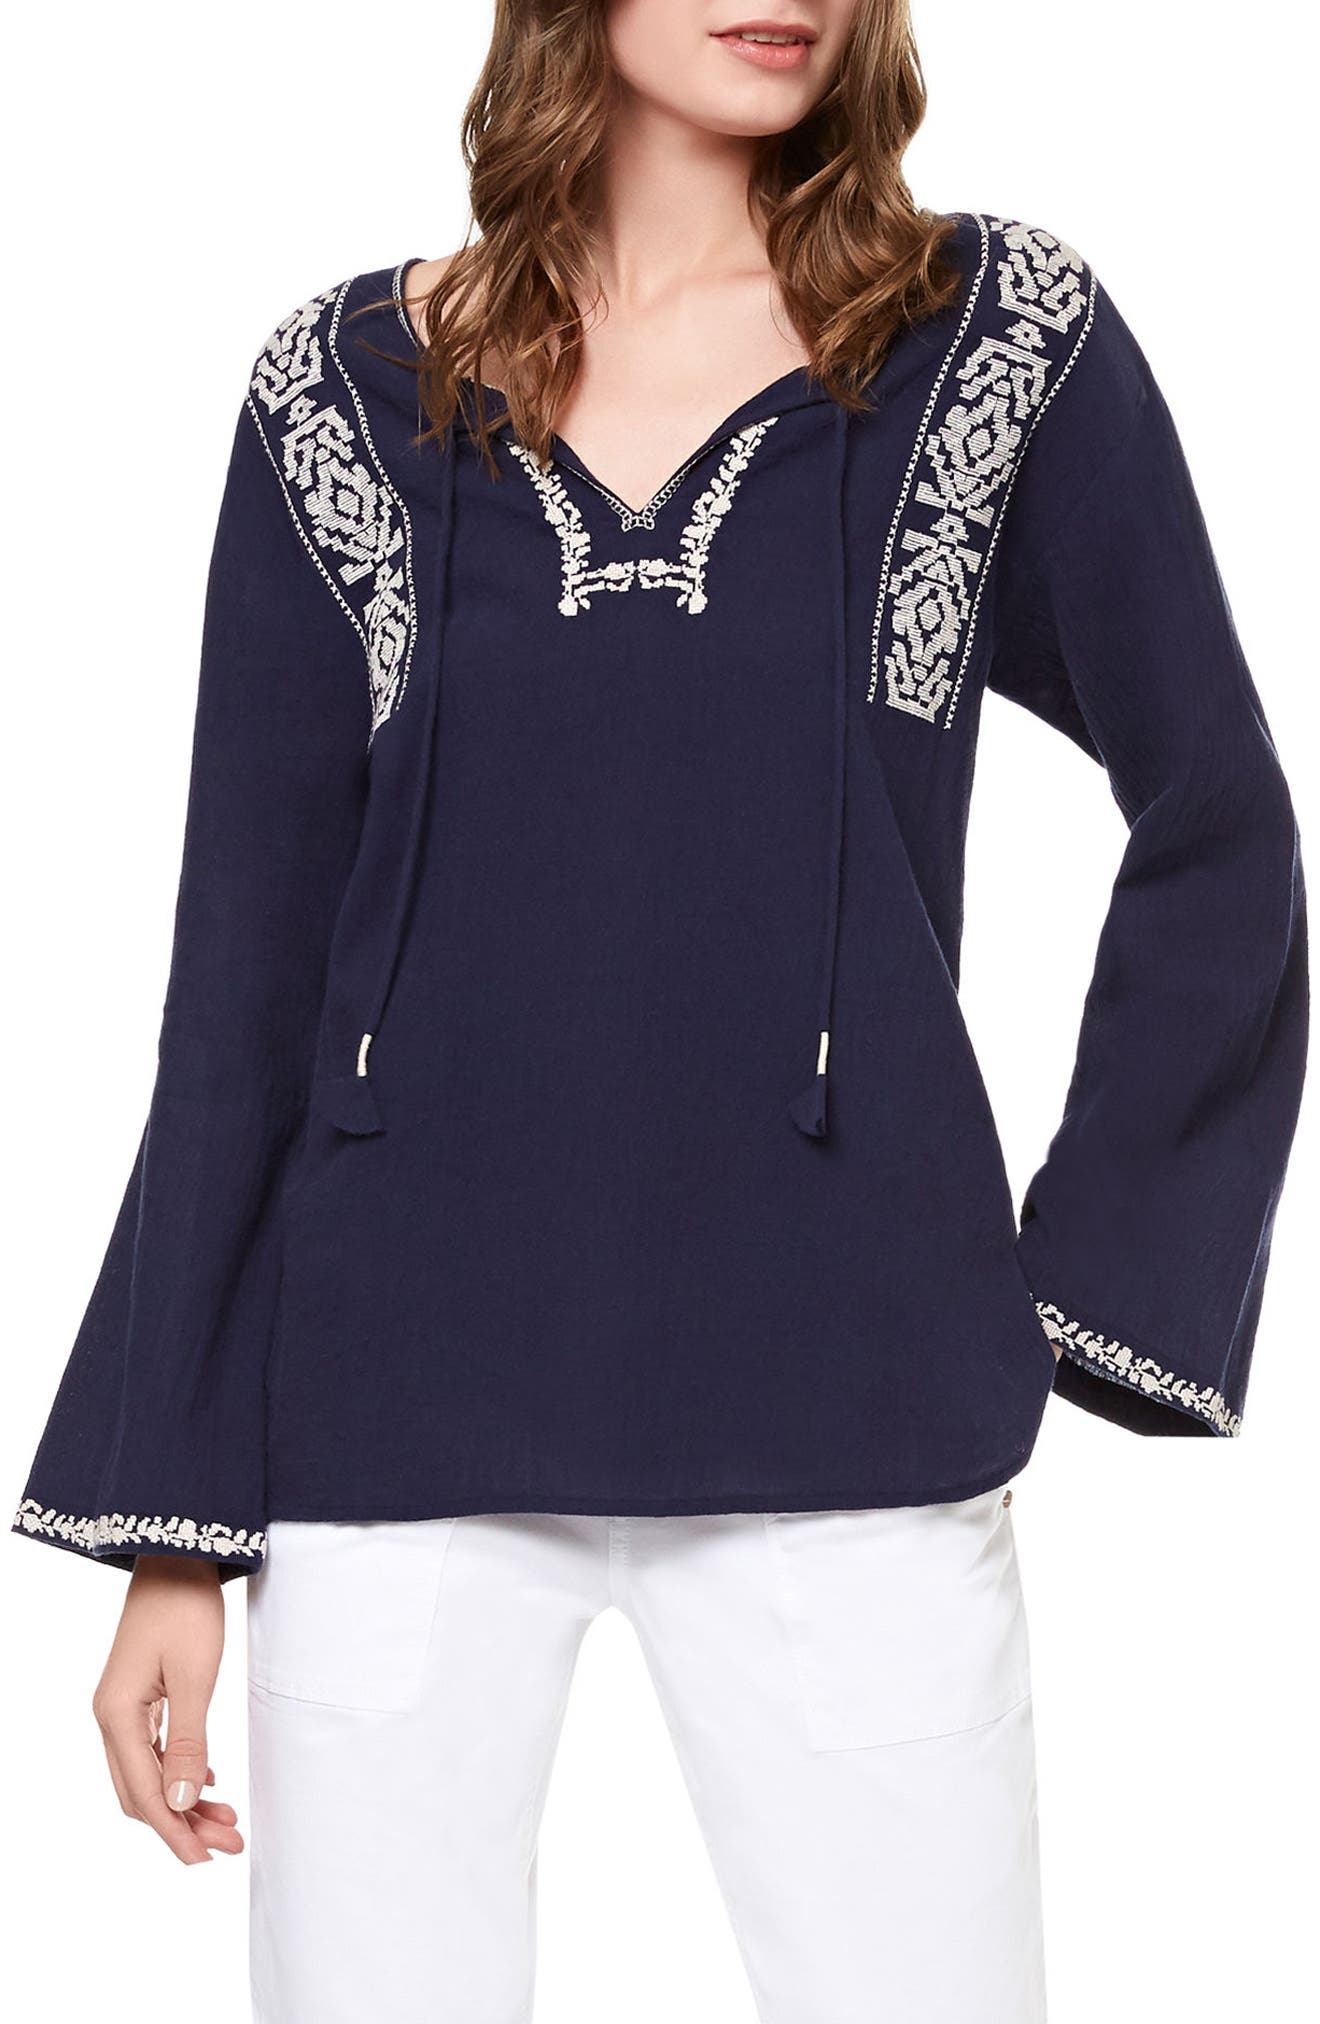 Alternate Image 1 Selected - Sanctuary Nova Embroidered Top